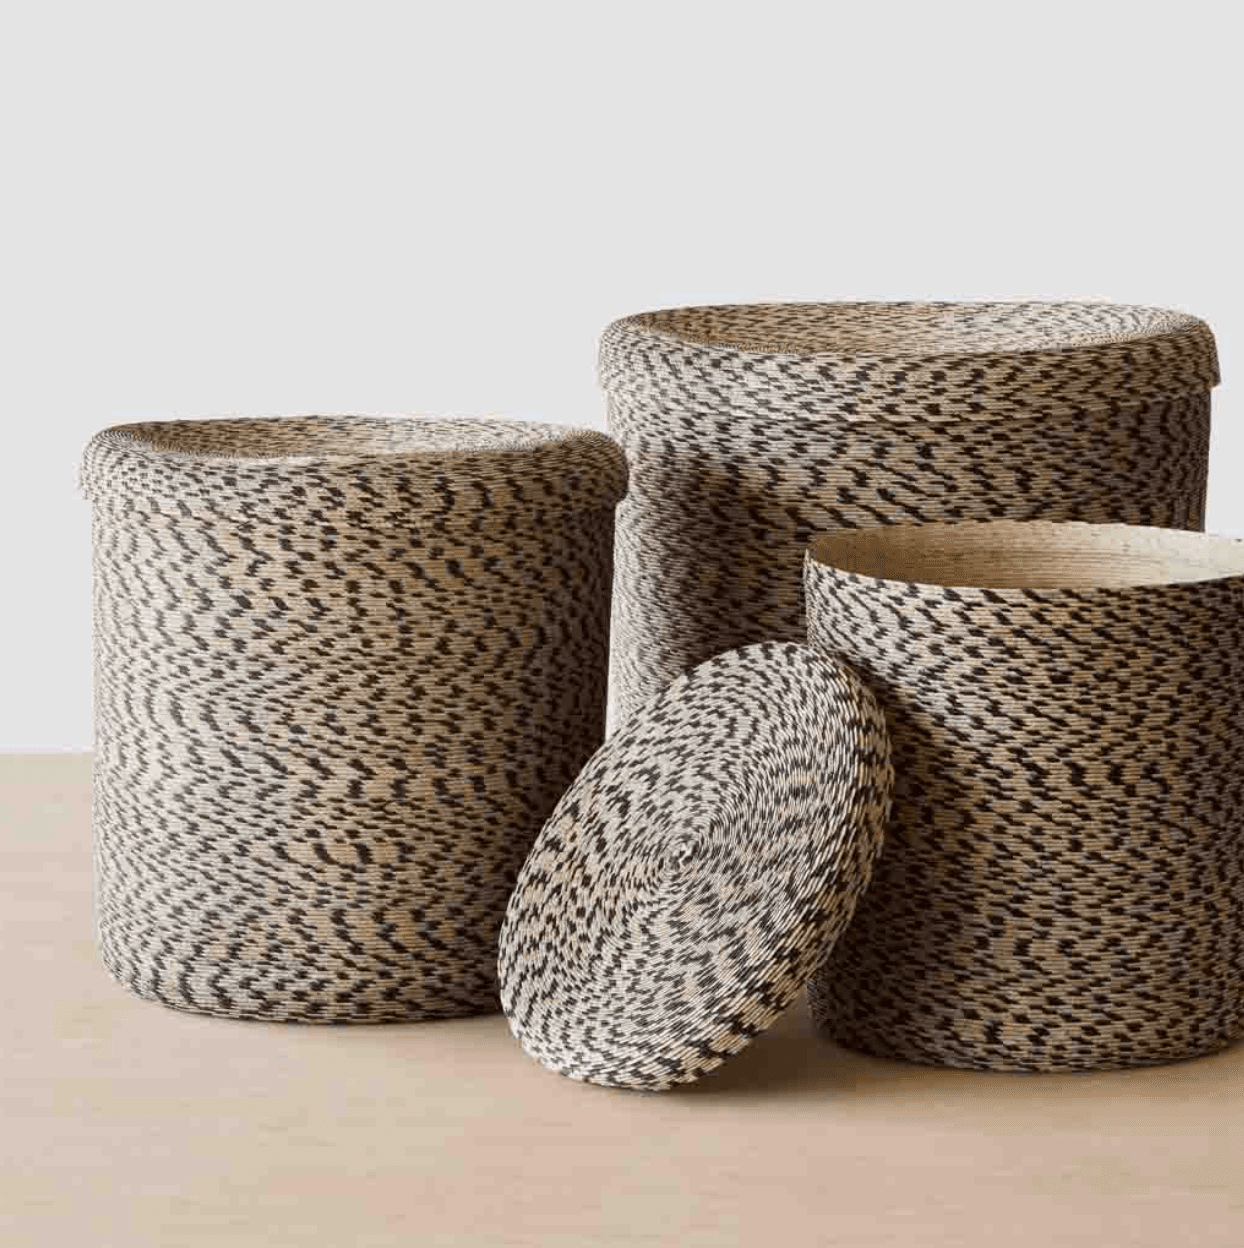 Several woven baskets, all of which are currently for sale at The Citizenry